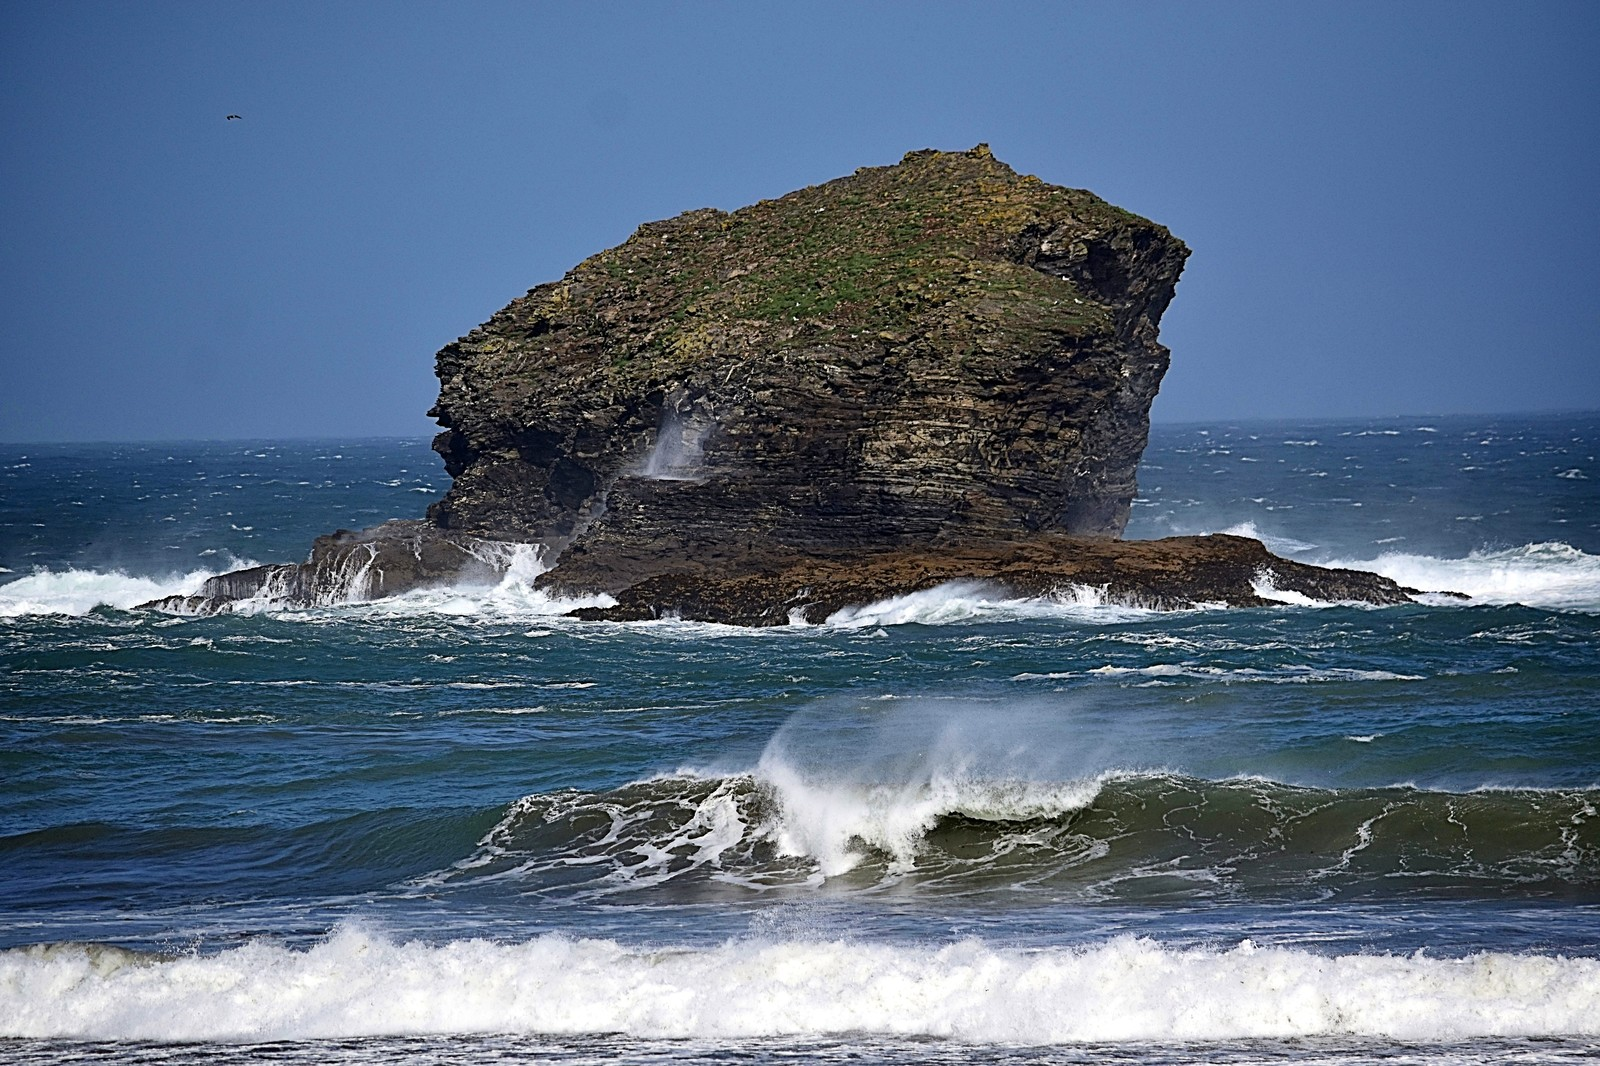 Gull Rock - Breezy at Portreath today